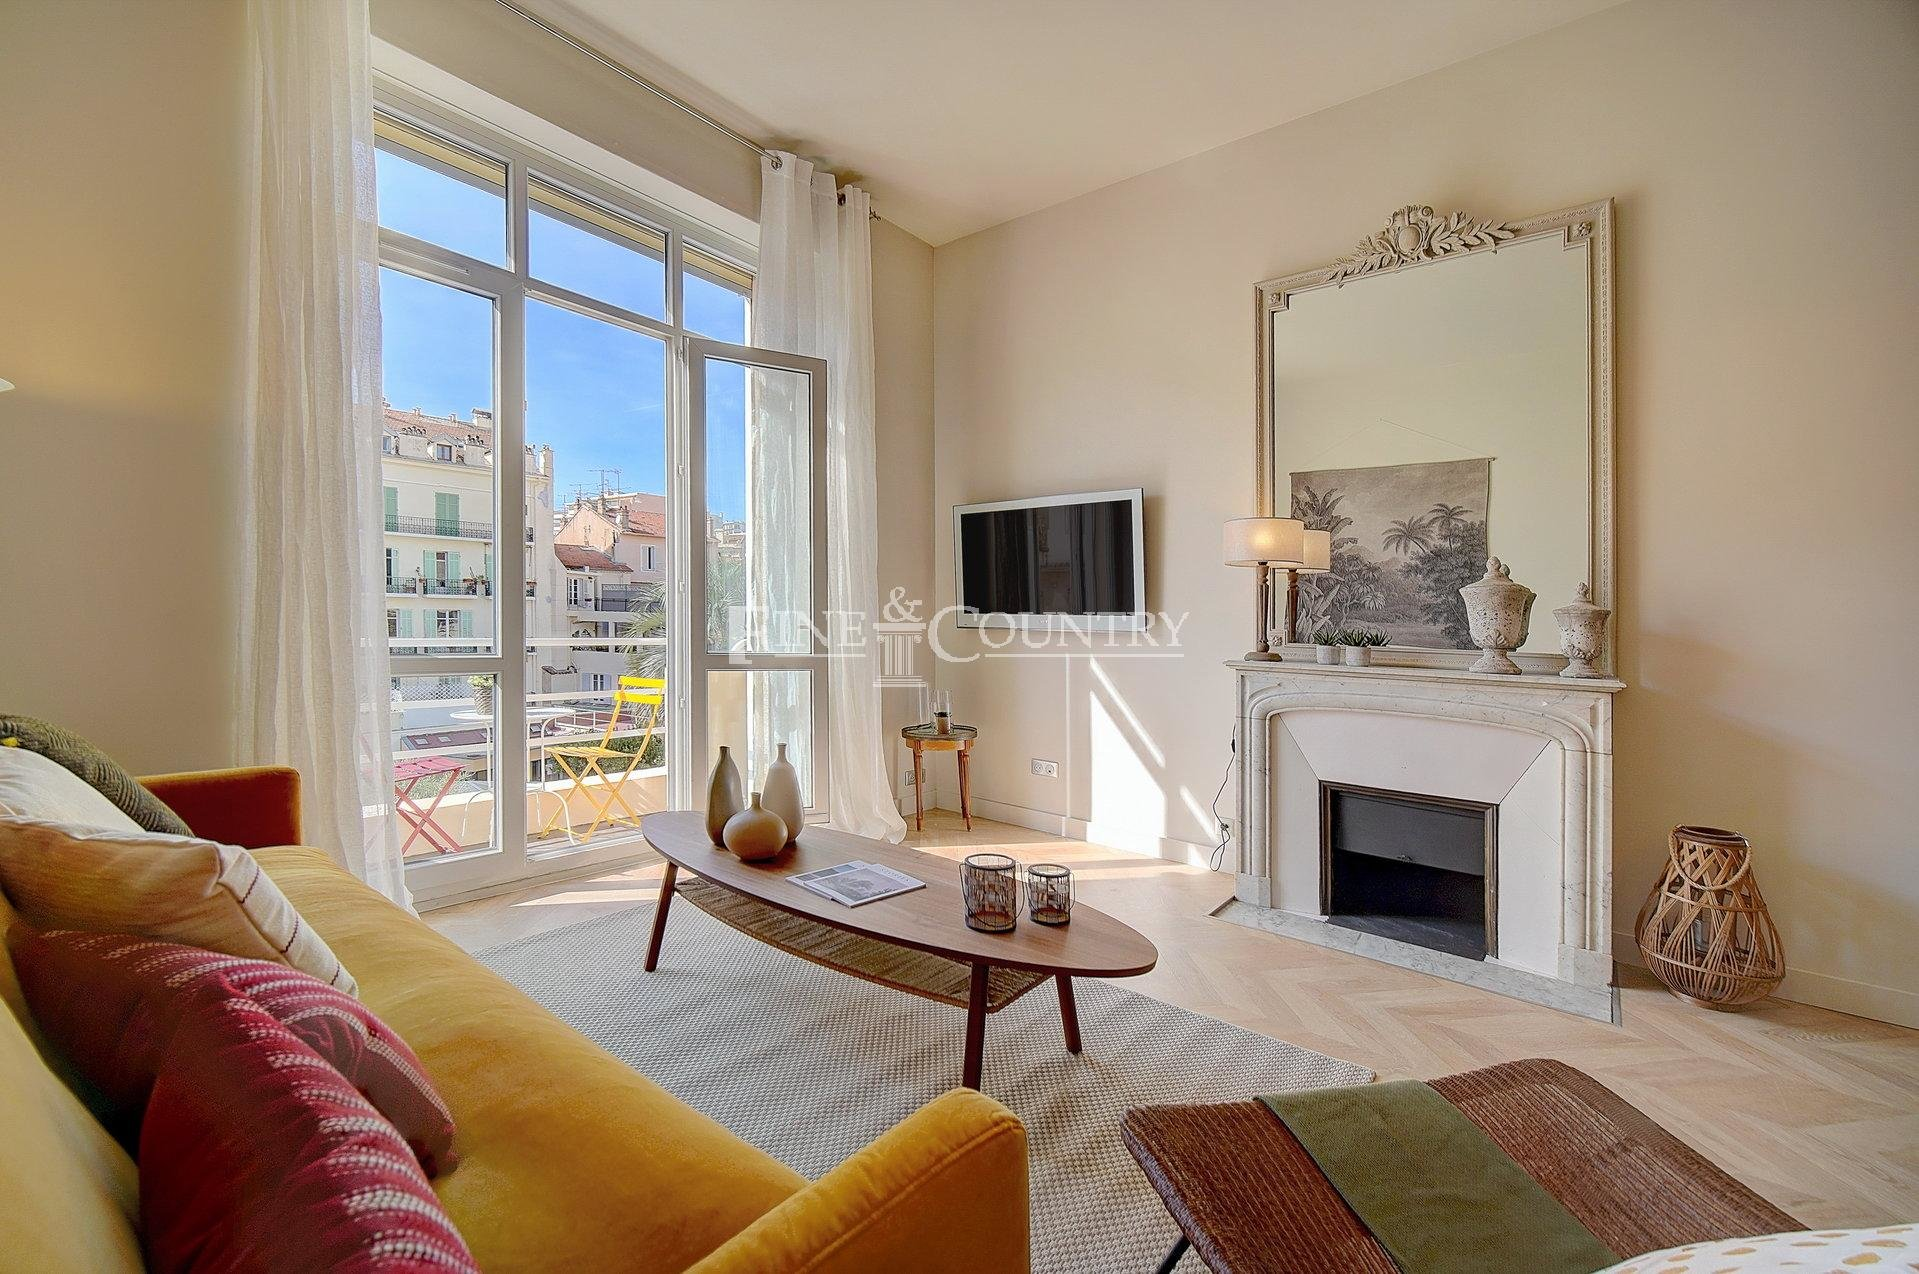 Bourgeois apartment for sale in the Banane, Cannes